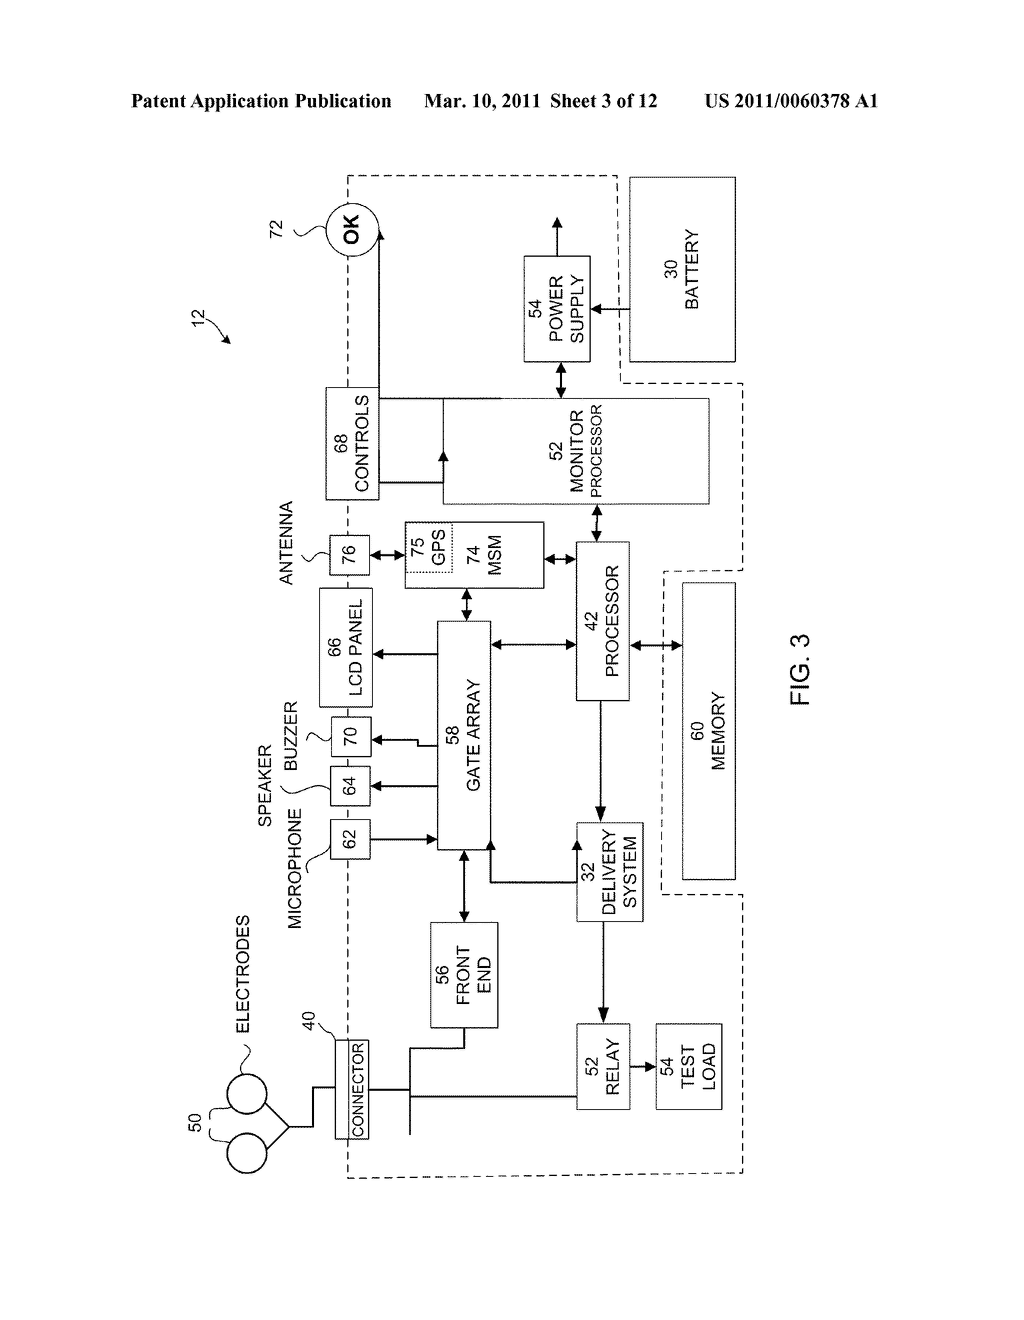 hight resolution of automated external defibrillator device with integrated wireless modem diagram schematic and image 04